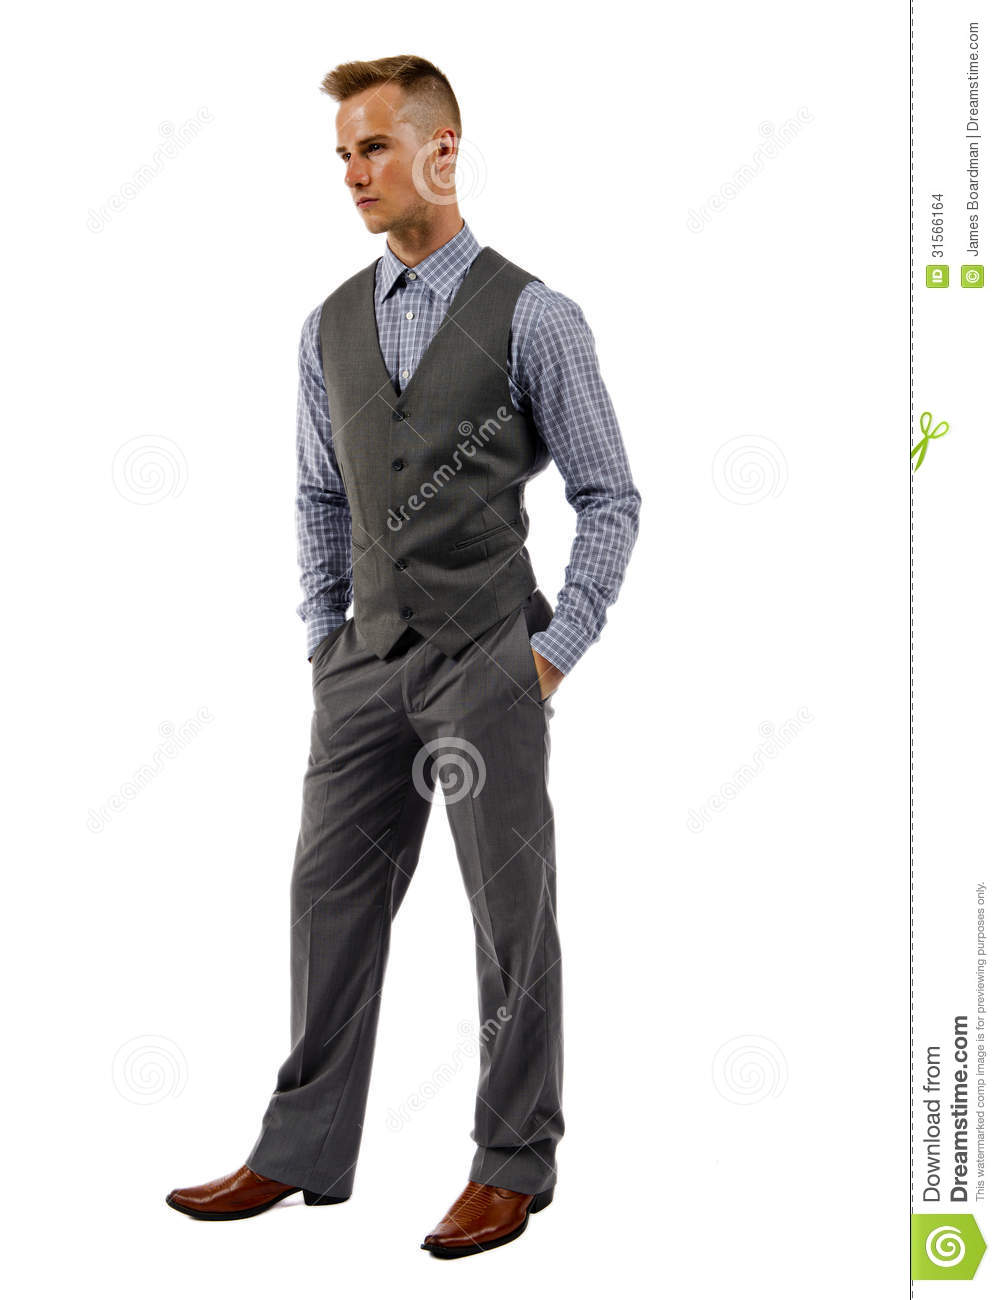 ... Man In A Suit With Hands In Pocket Stock Images - Image: 31566164